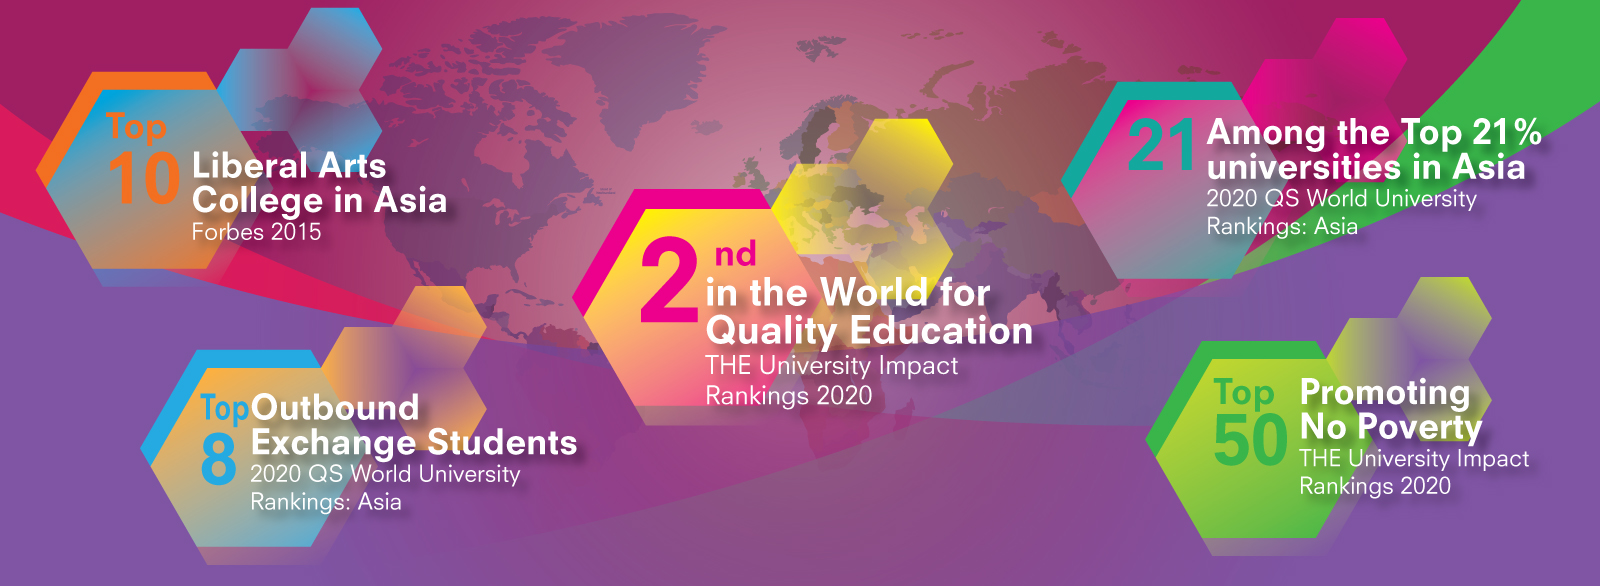 Lingnan University is ranked 2ndworldwide for Quality Education by the Times Higher Education's most recent World University Impact Rankings 2020